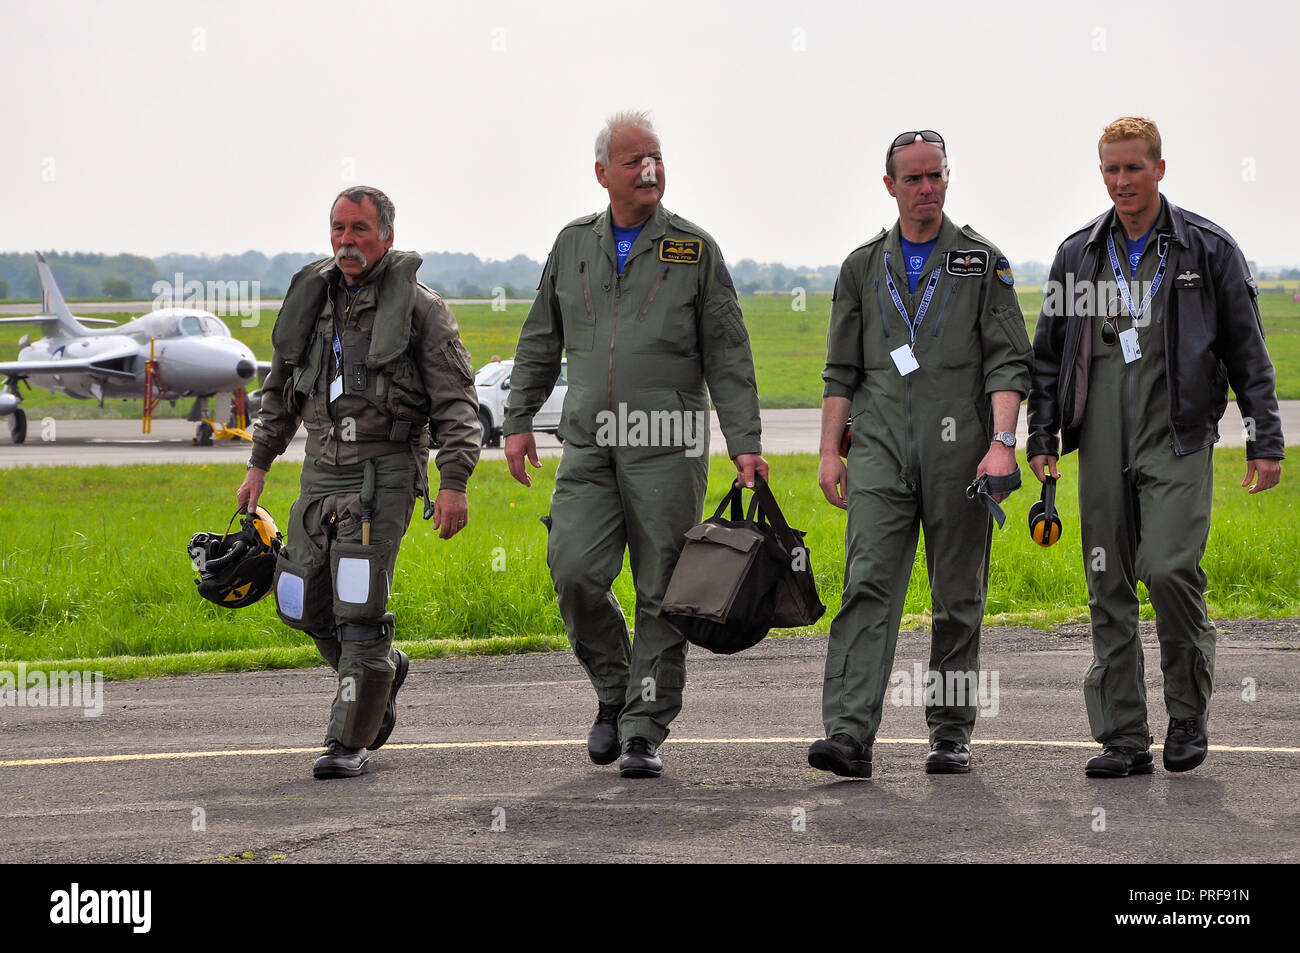 Pilots walking in having displayed classic jet planes of Midair Squadron at Cotswold Airport, Kemble. Chris Heames, Dave Piper, Gareth Walker - Stock Image